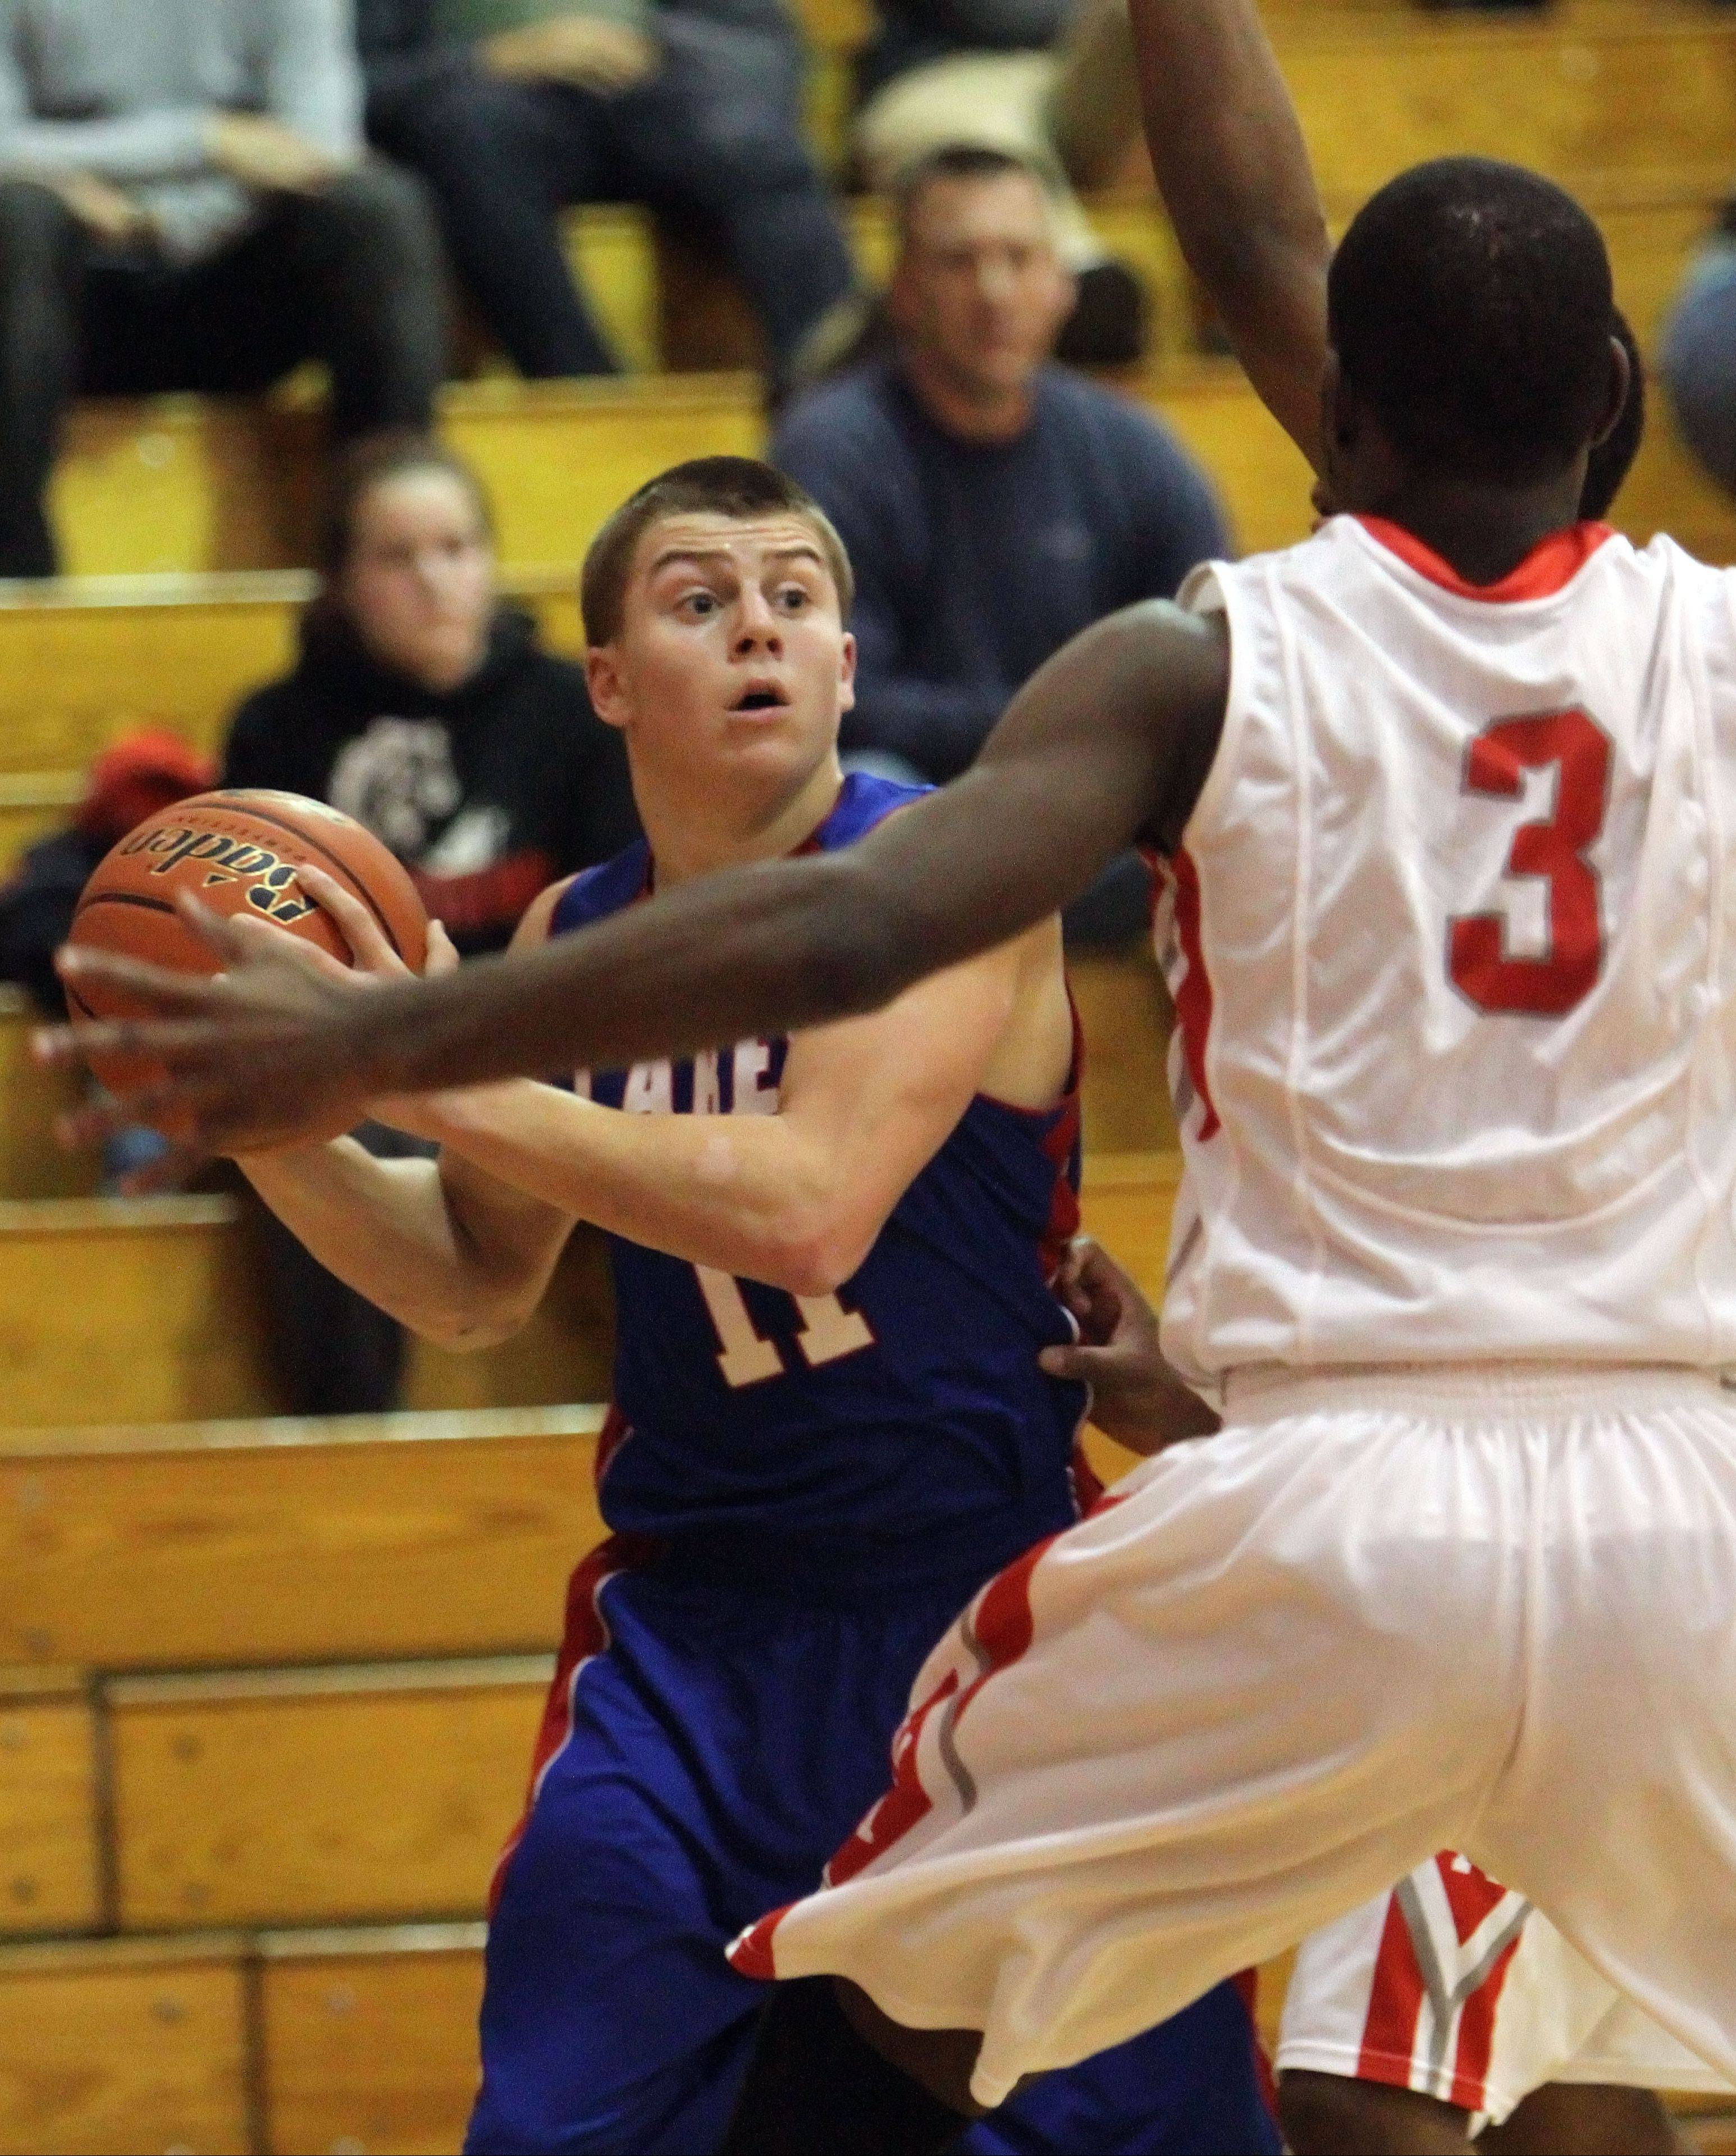 Lakes' Jacob Balliu, left, looks to pass around Mundelein's Nate Williams on Tuesday at Mundelein.